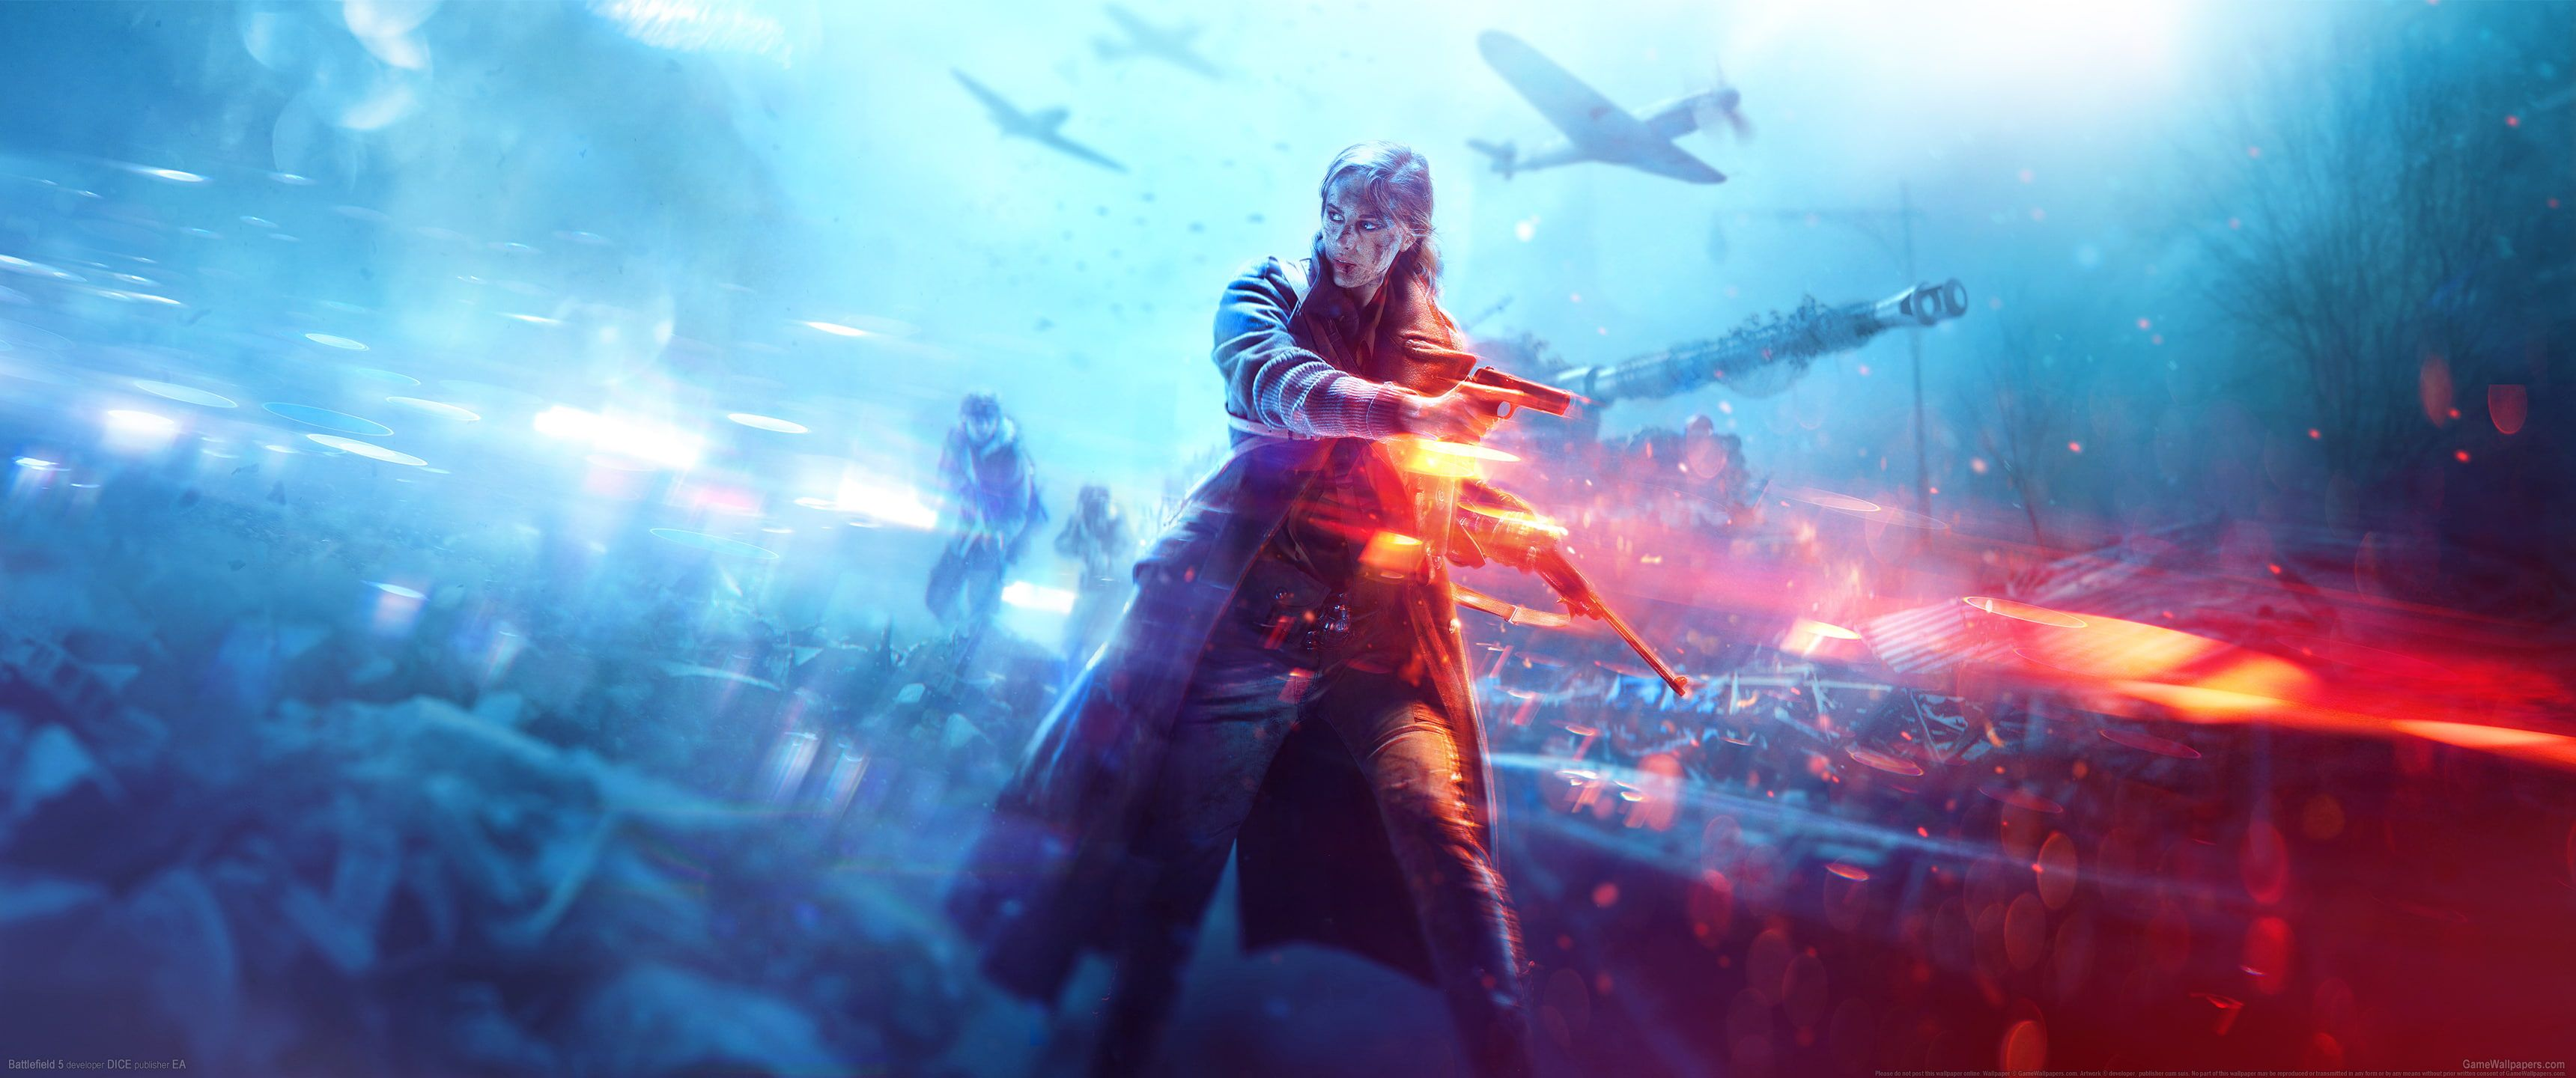 Video Games Battlefield V Ultrawide Ultra Wide Battlefield Battlefield 5 2k Wallpaper Hdwallpaper Desktop Battlefield Battlefield 5 3840x2160 Wallpaper